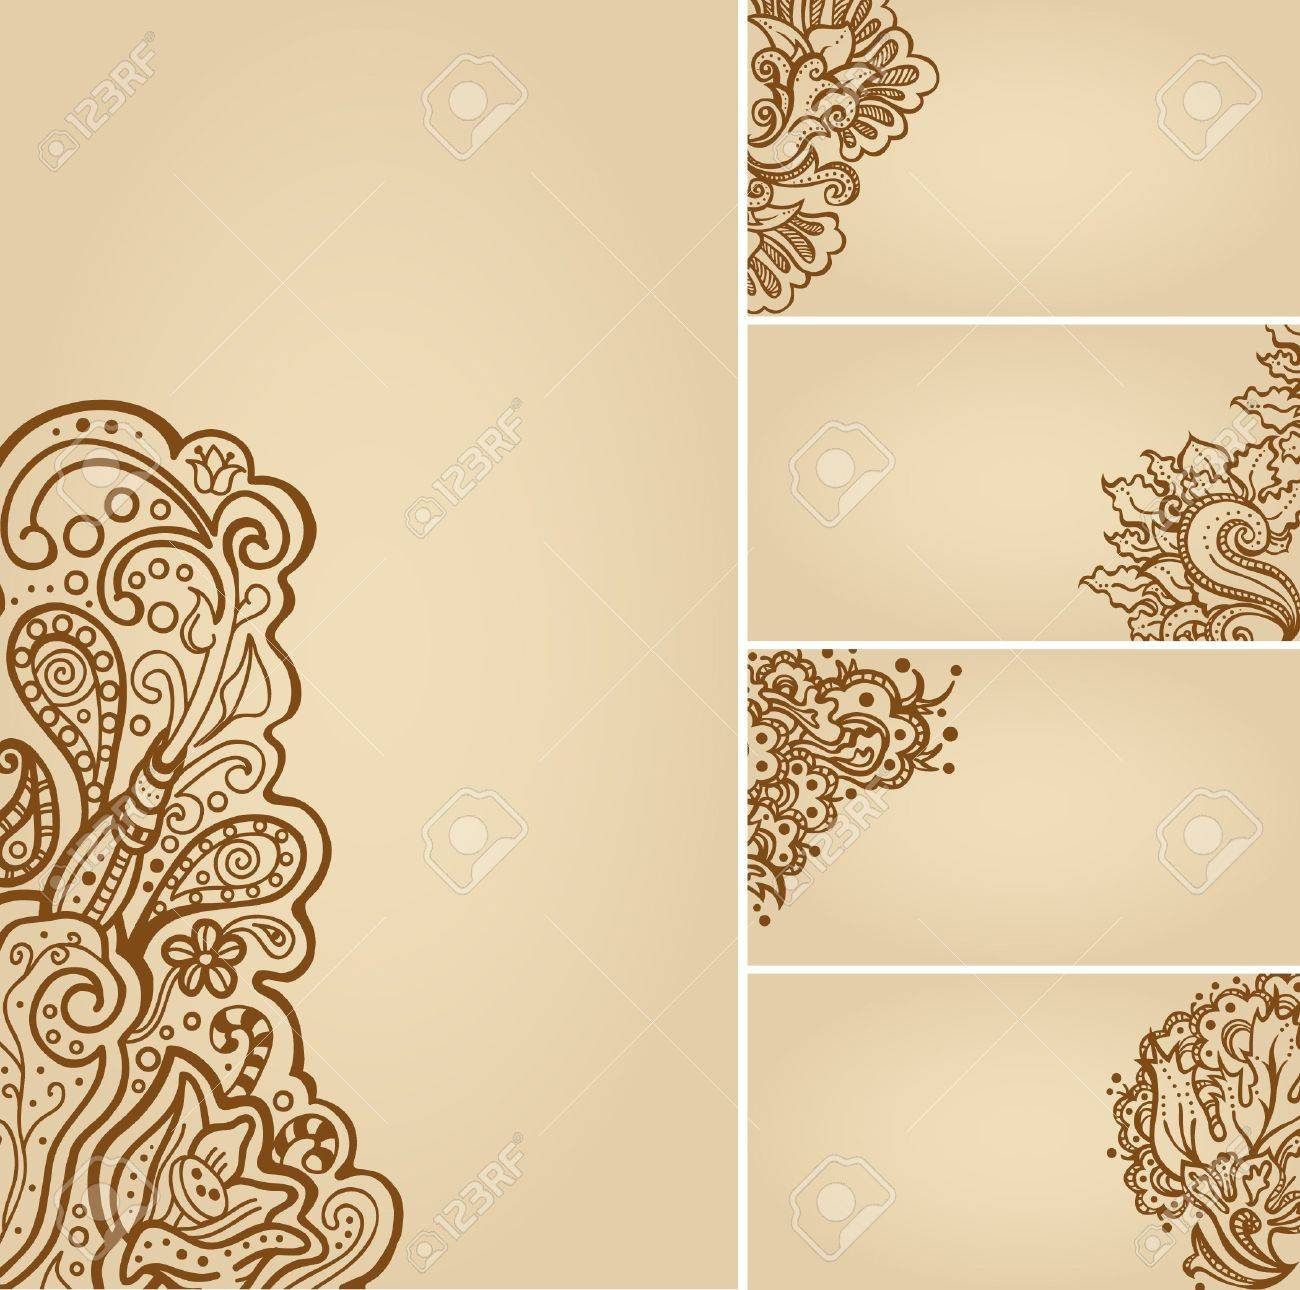 Set Of Henna Tattoo Floral Banners And Business Card Templates - Tattoo business card templates